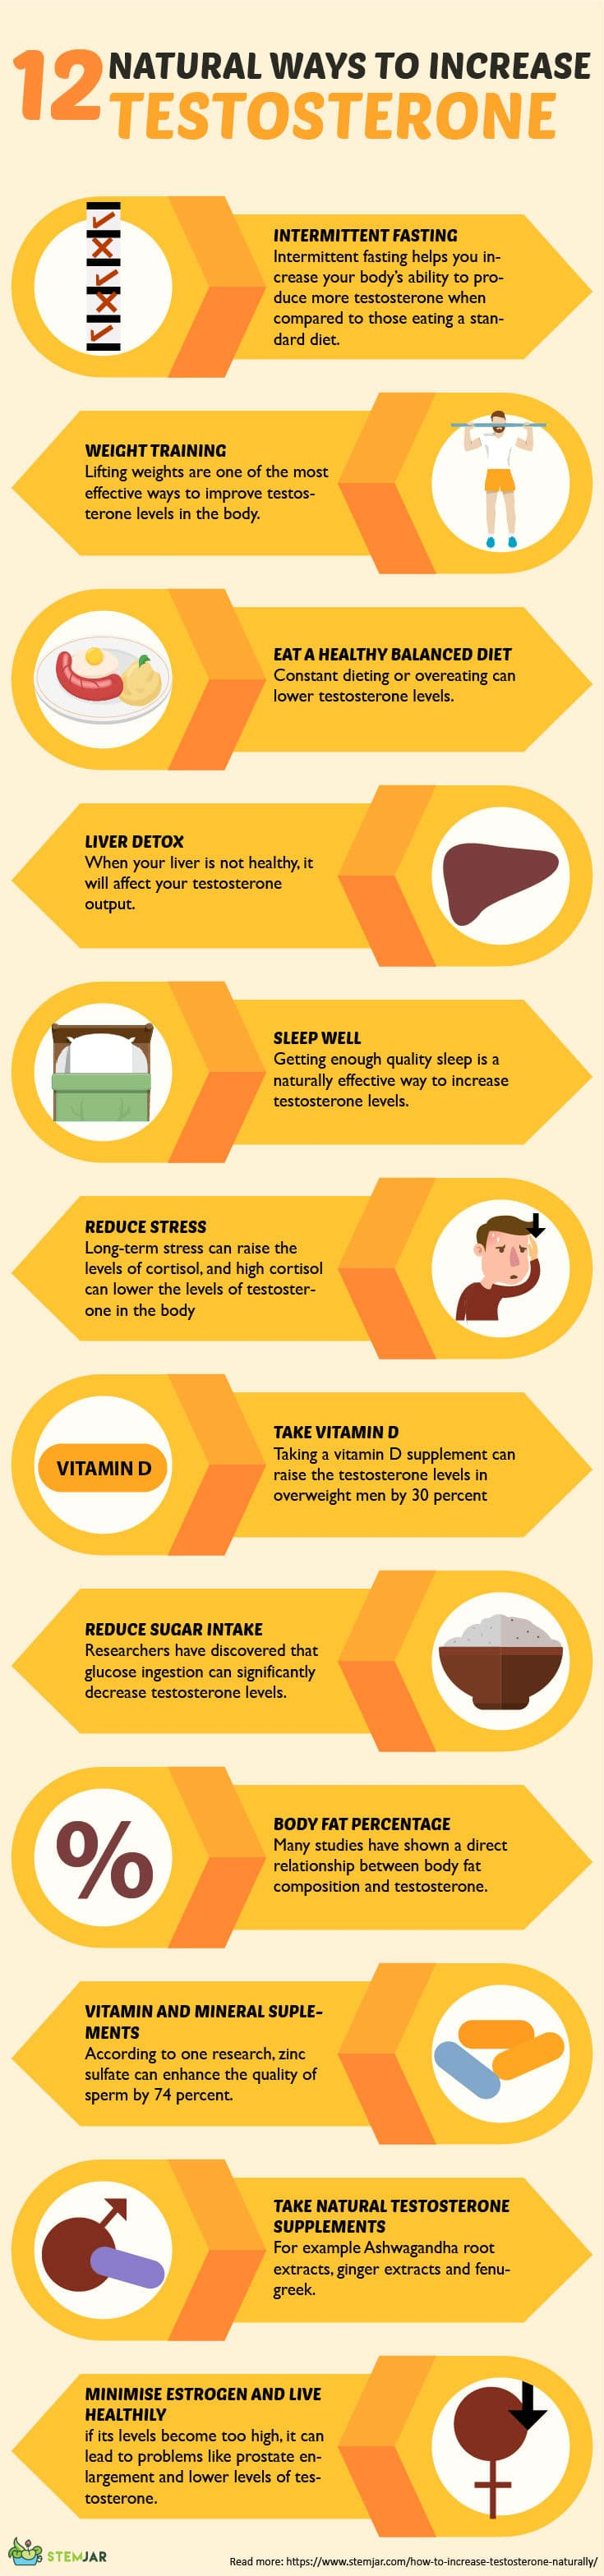 How to Increase Testosterone infographic